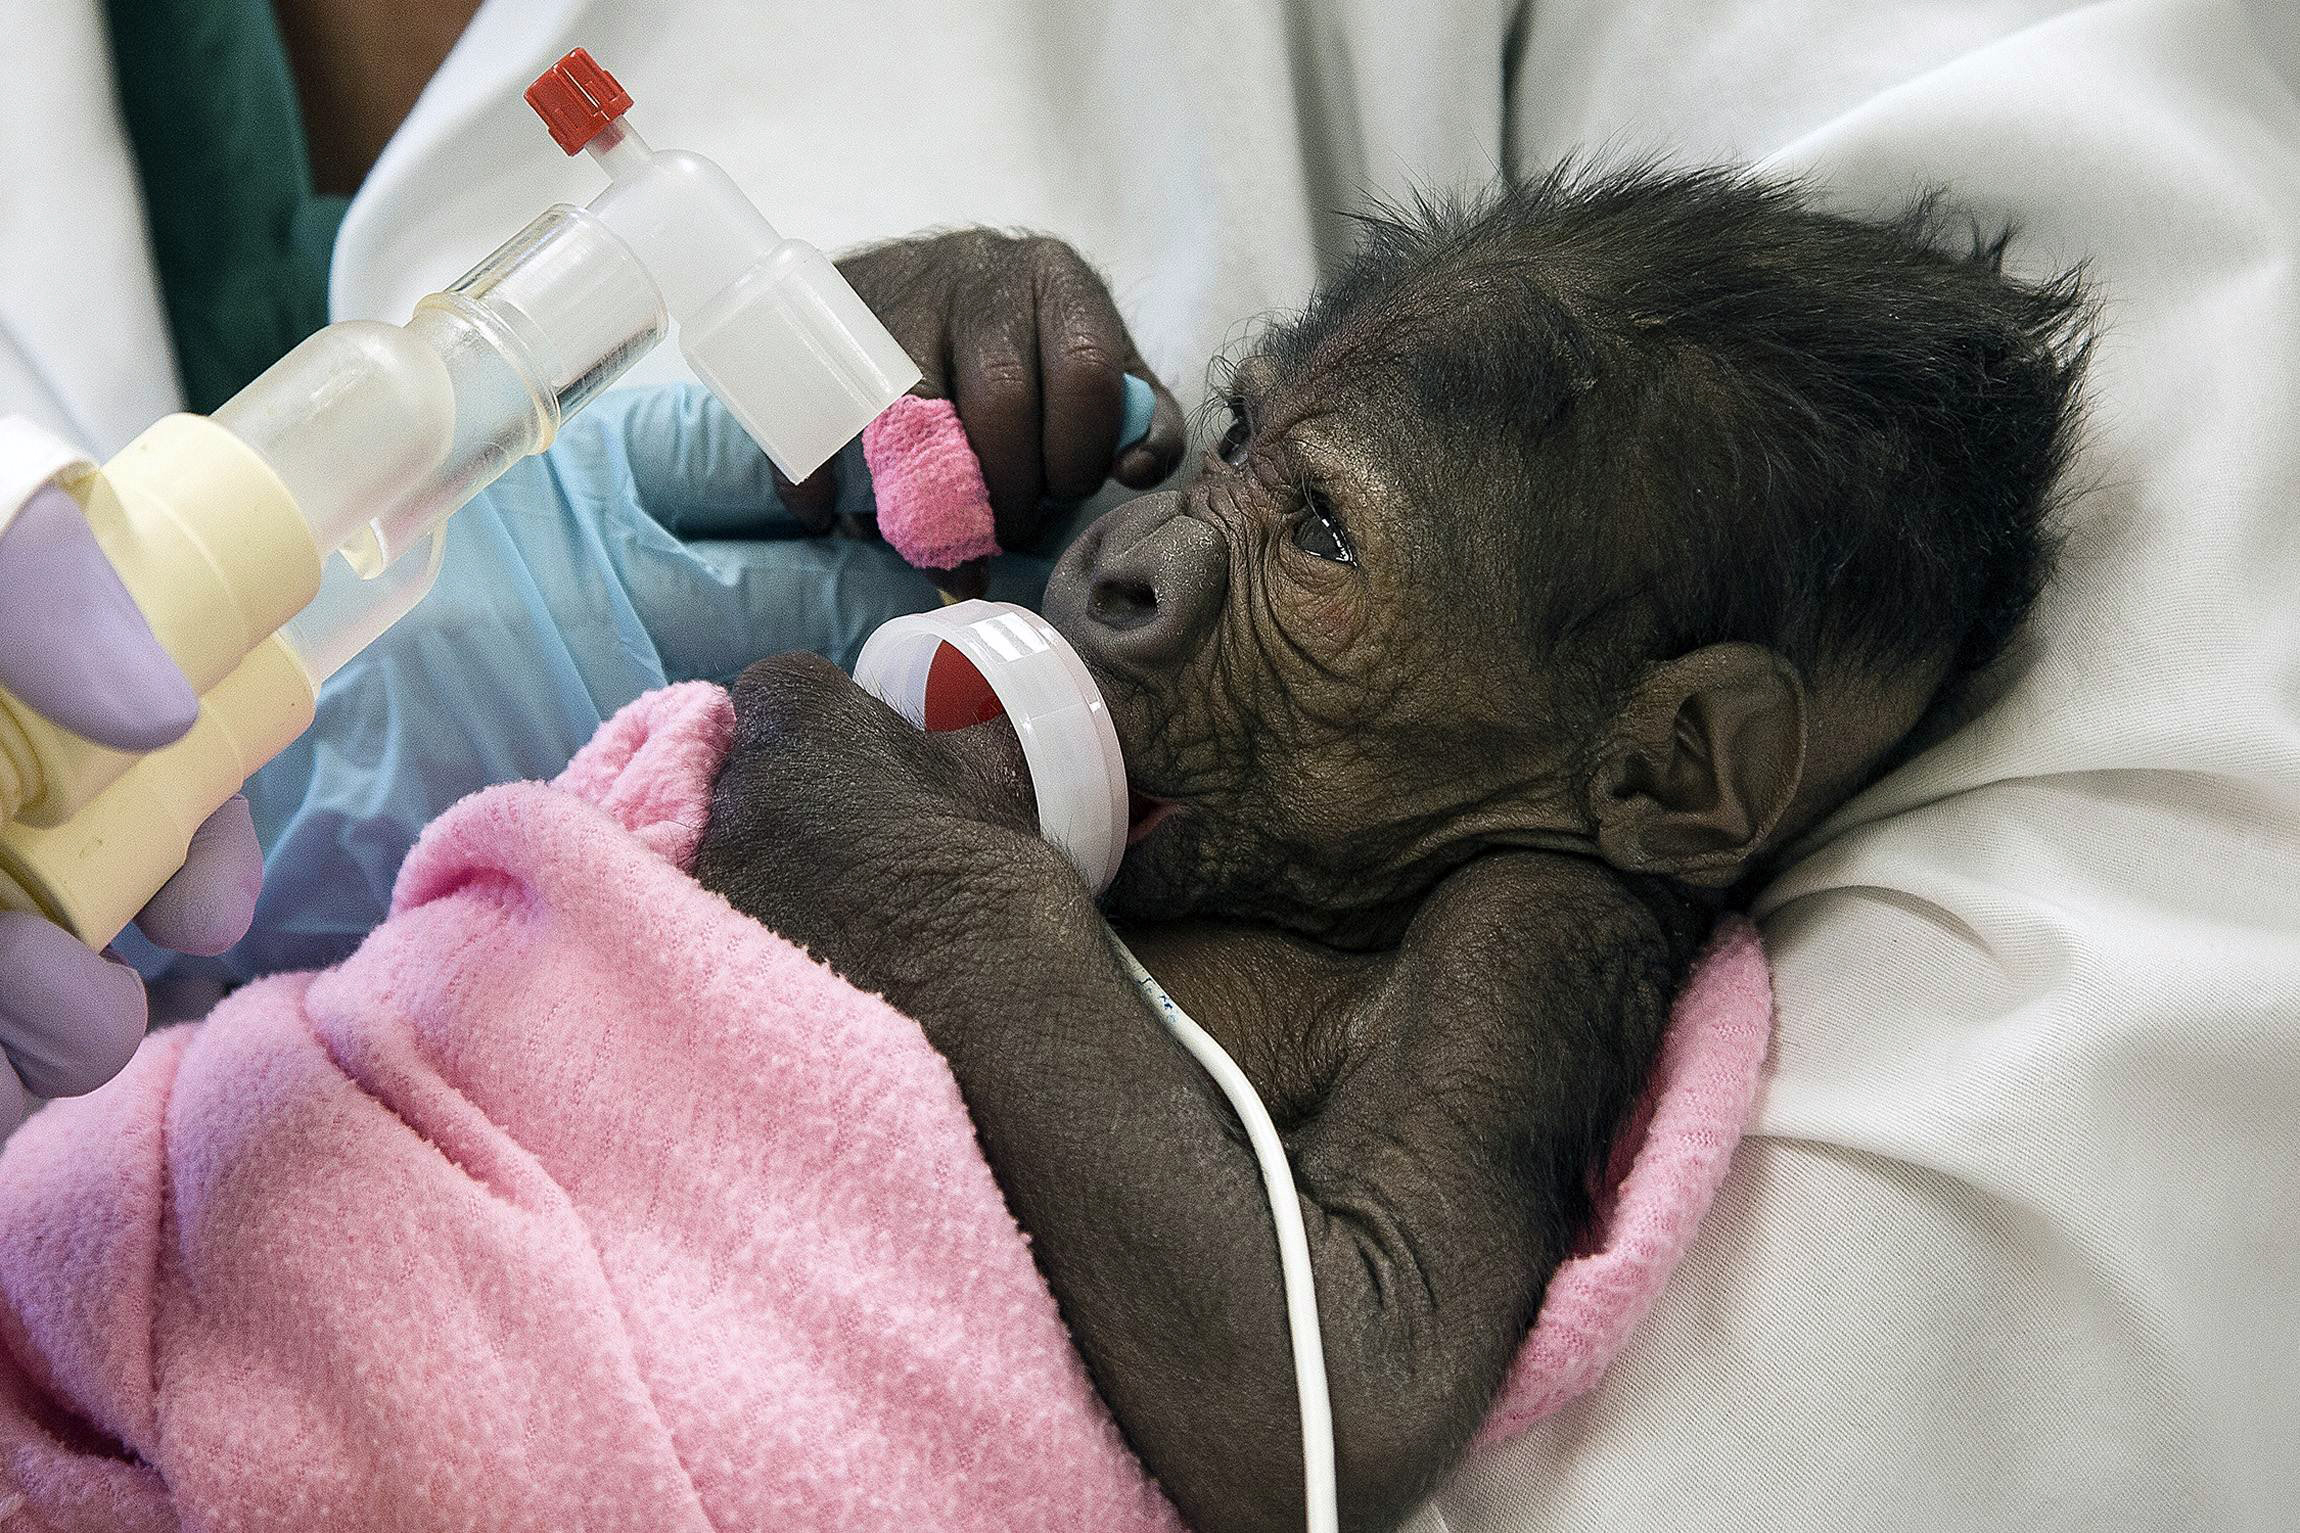 A baby gorilla born in a rare Caesarian section at the San Diego Zoo is suffering from pneumonia March 13, 2014.